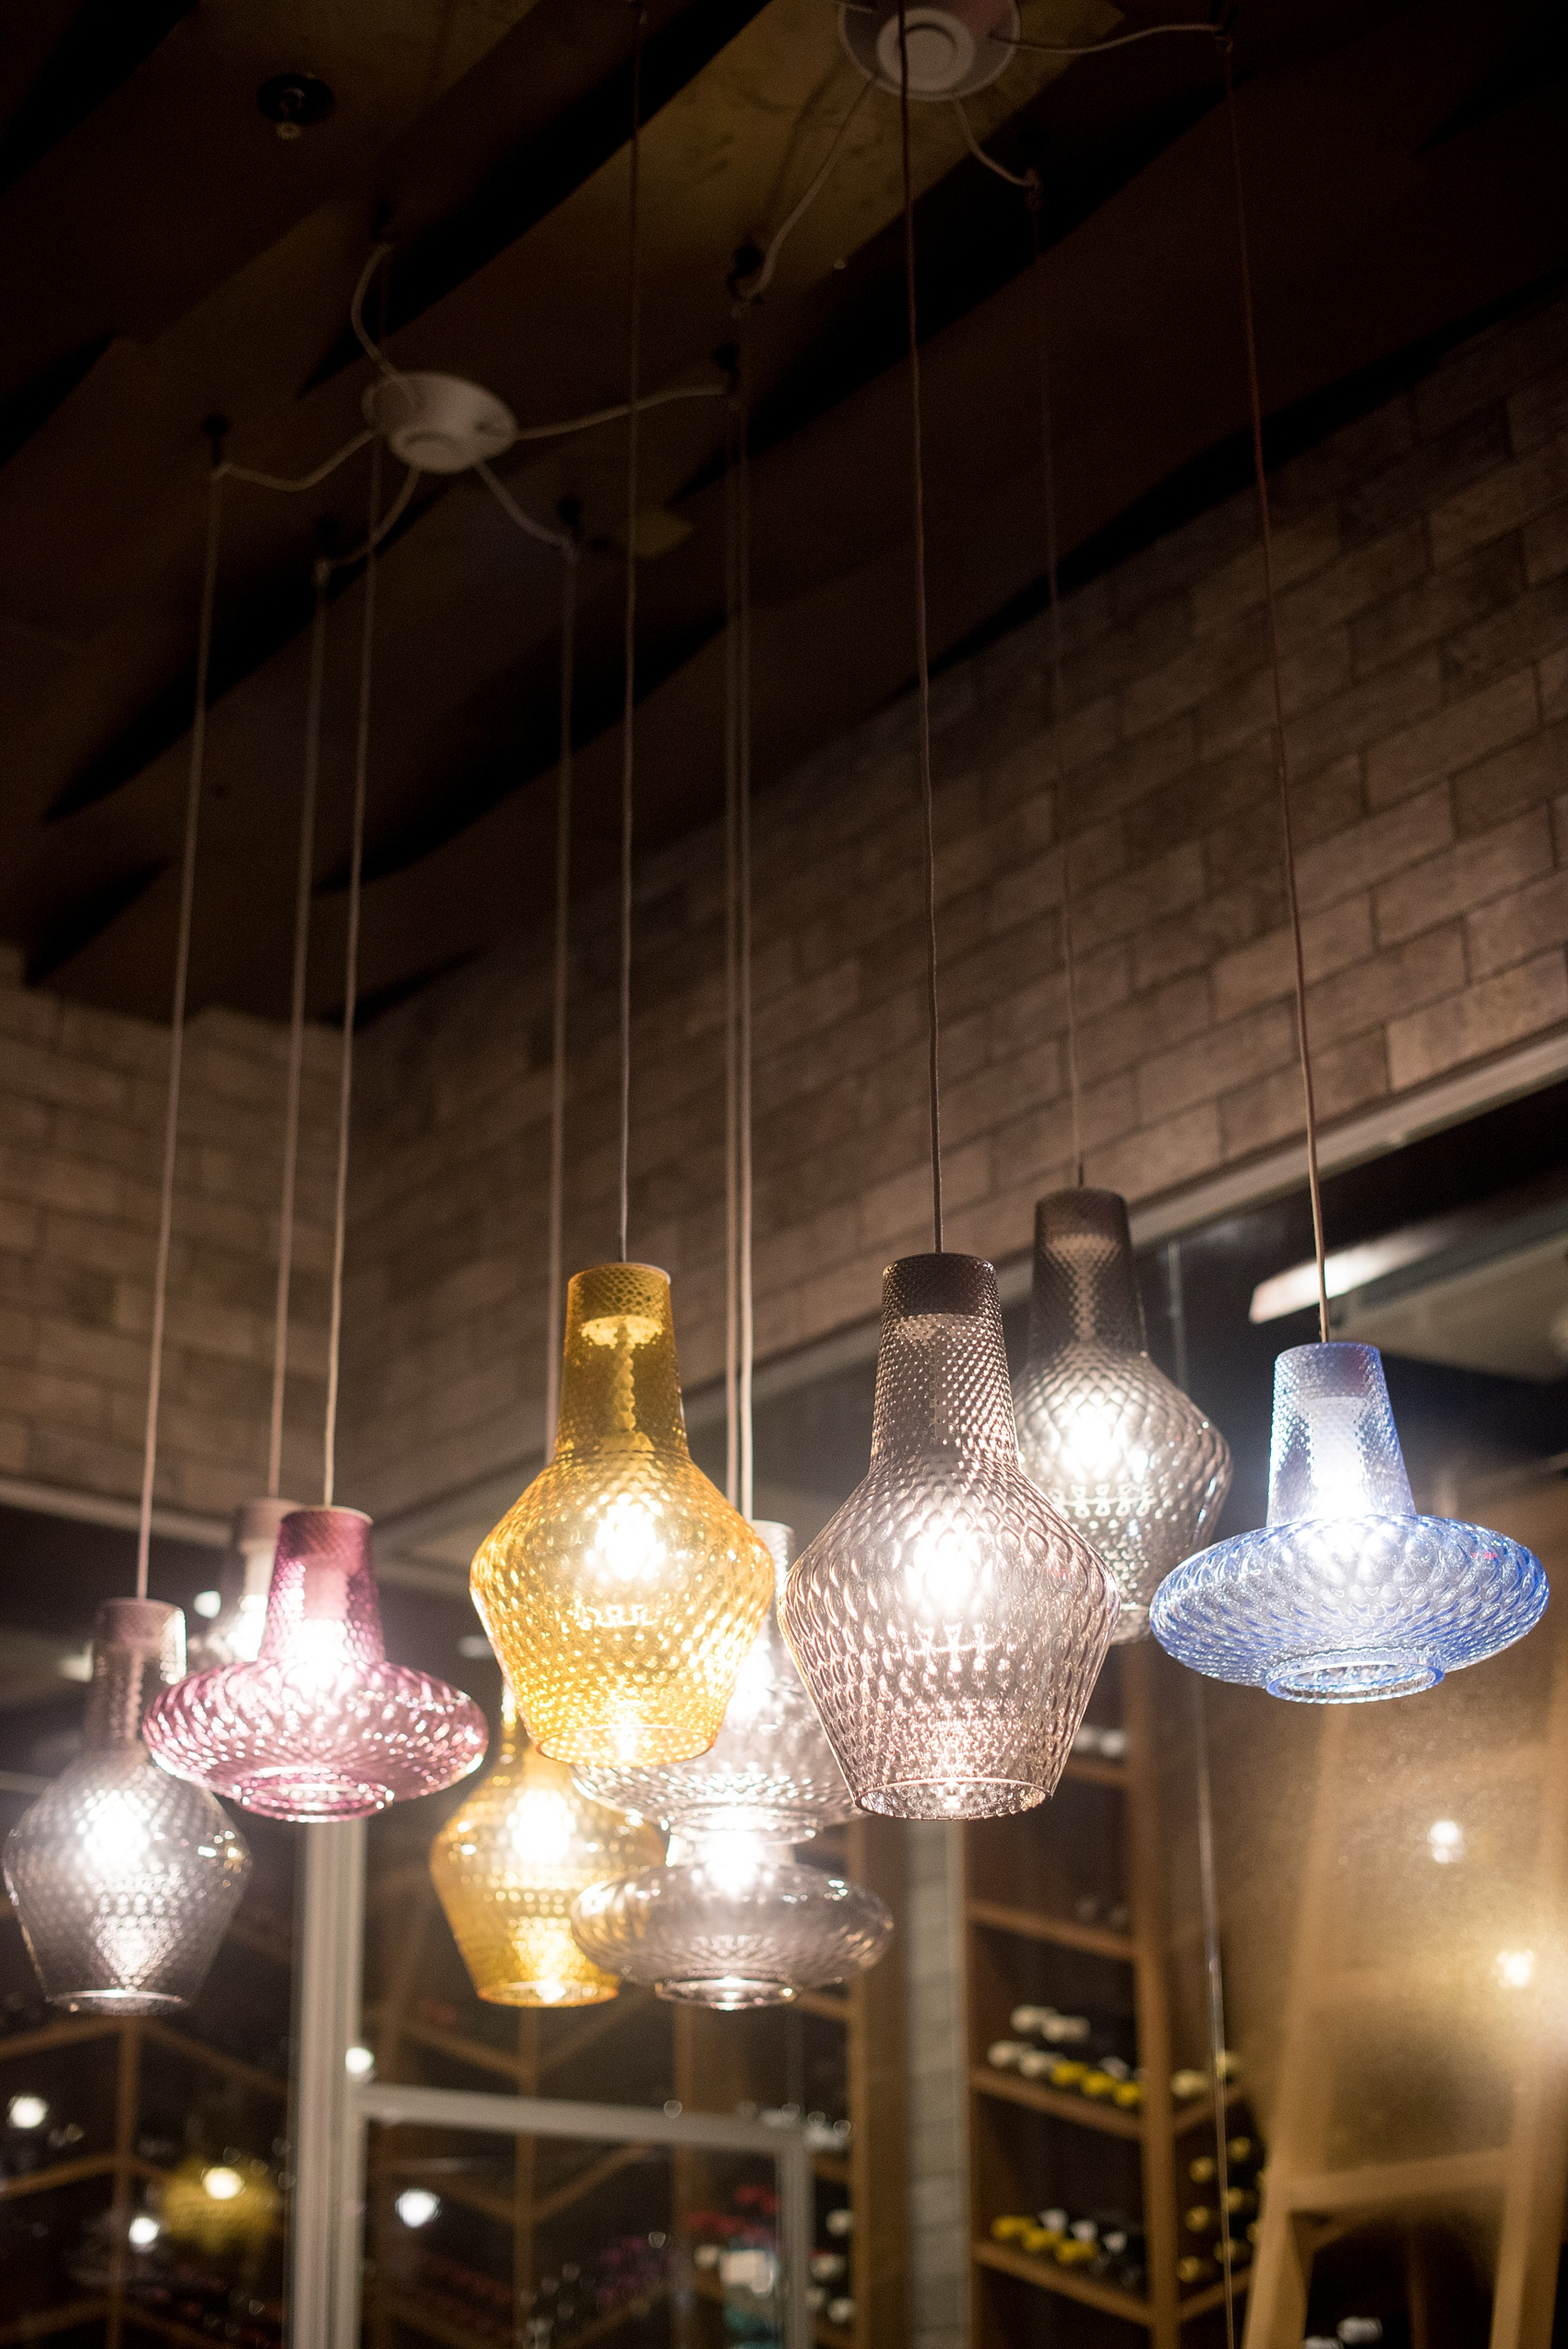 Photos of Vidrio restaurant in Raleigh, NC by Mikkel Paige Photography. Wedding venue in North Carolina with mediterranean and Spanish inspired art and interior design. Picture of different colored glass lamp hangings.